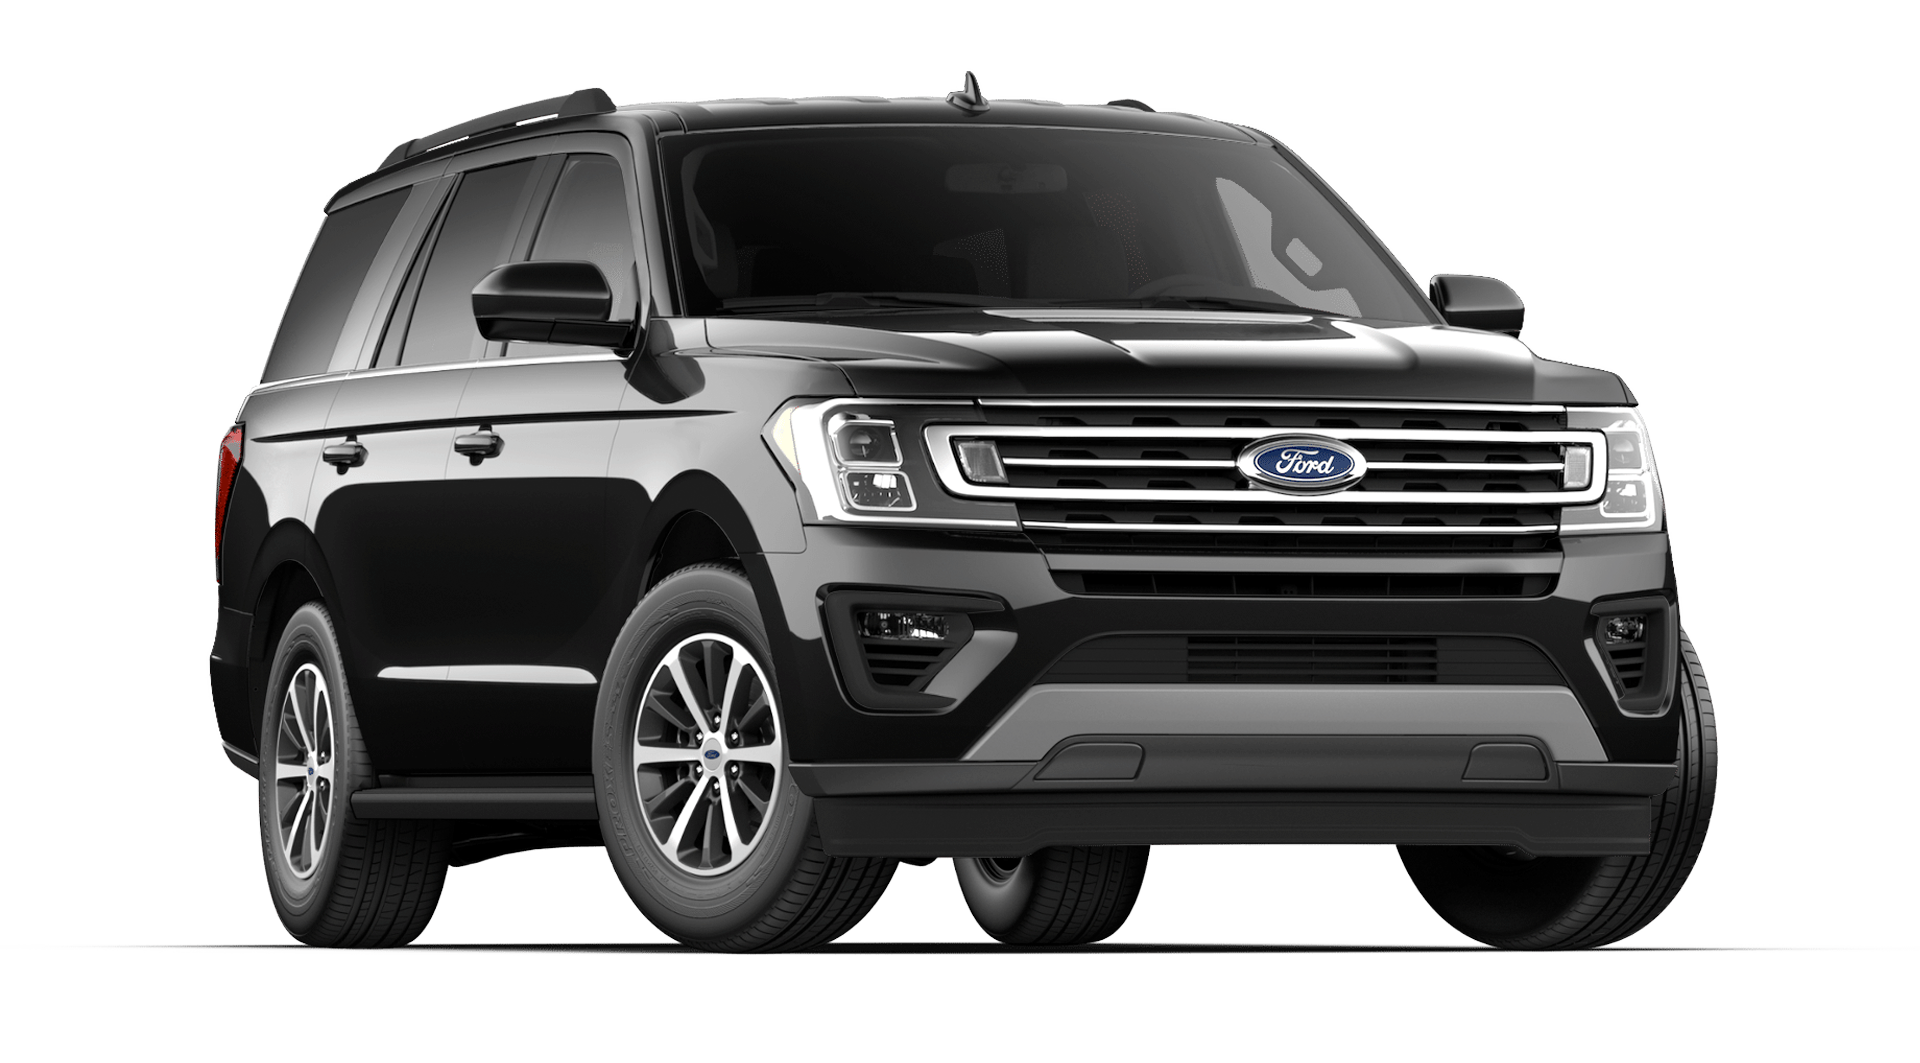 2018 Ford Expedition XL 4X4 - Shown